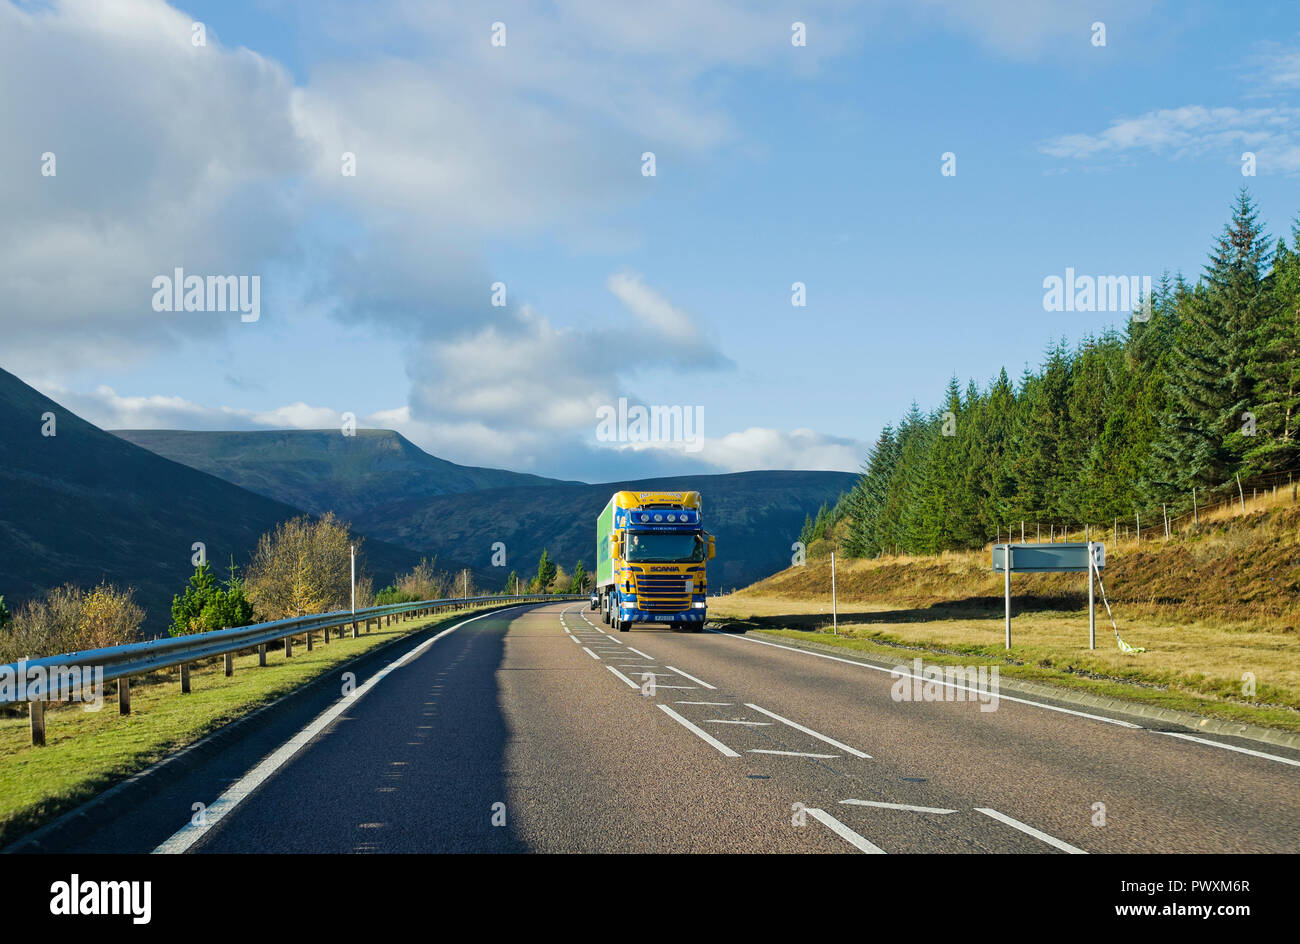 HGV lorry travelling on A9 trunk road near the summit of Drumochter Pass on single carriageway stretch of road, Scottish Highlands, Scotland UK. - Stock Image